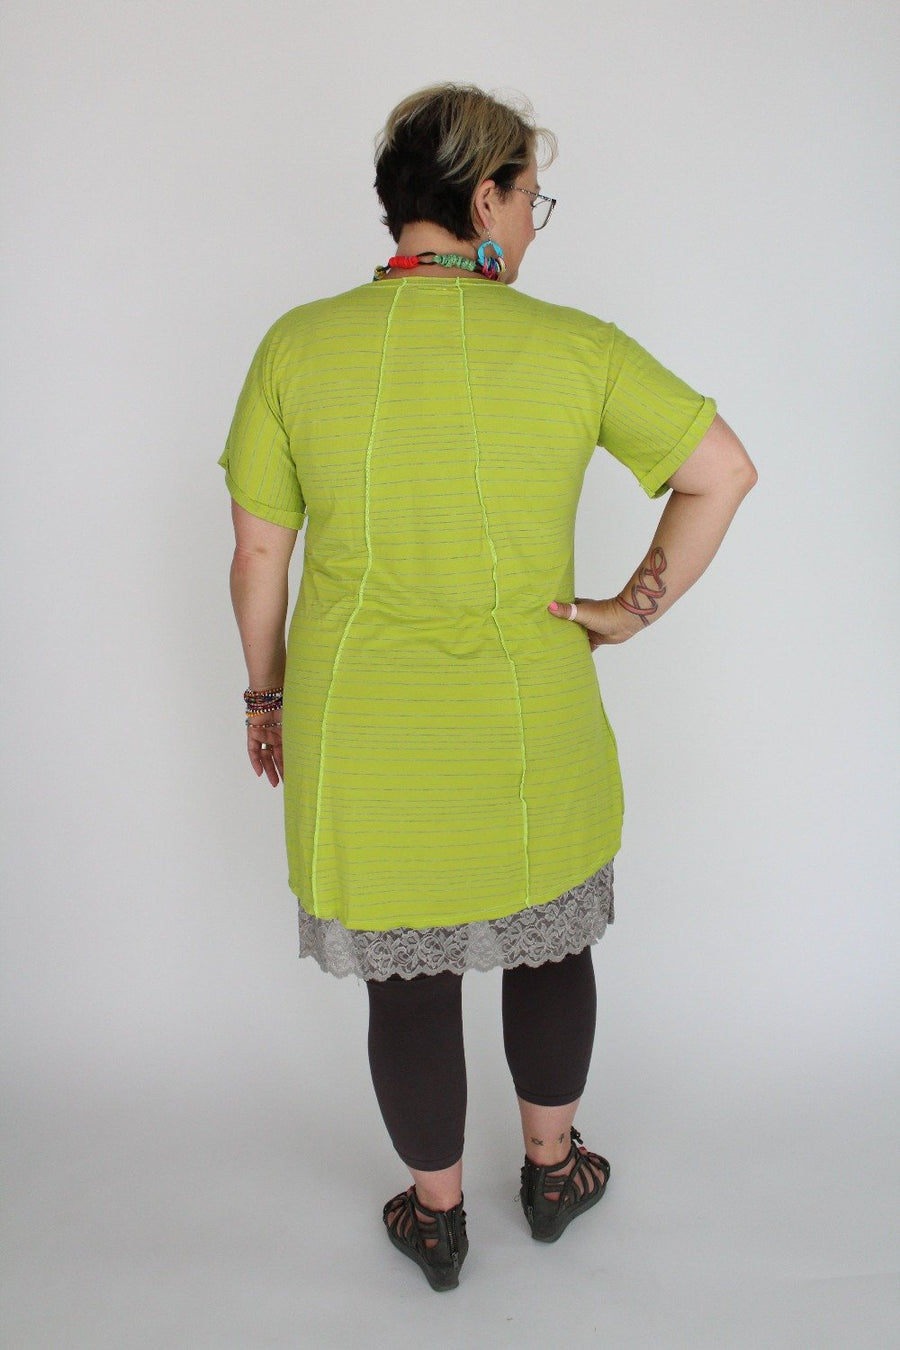 Keylime Sweetheart Dress